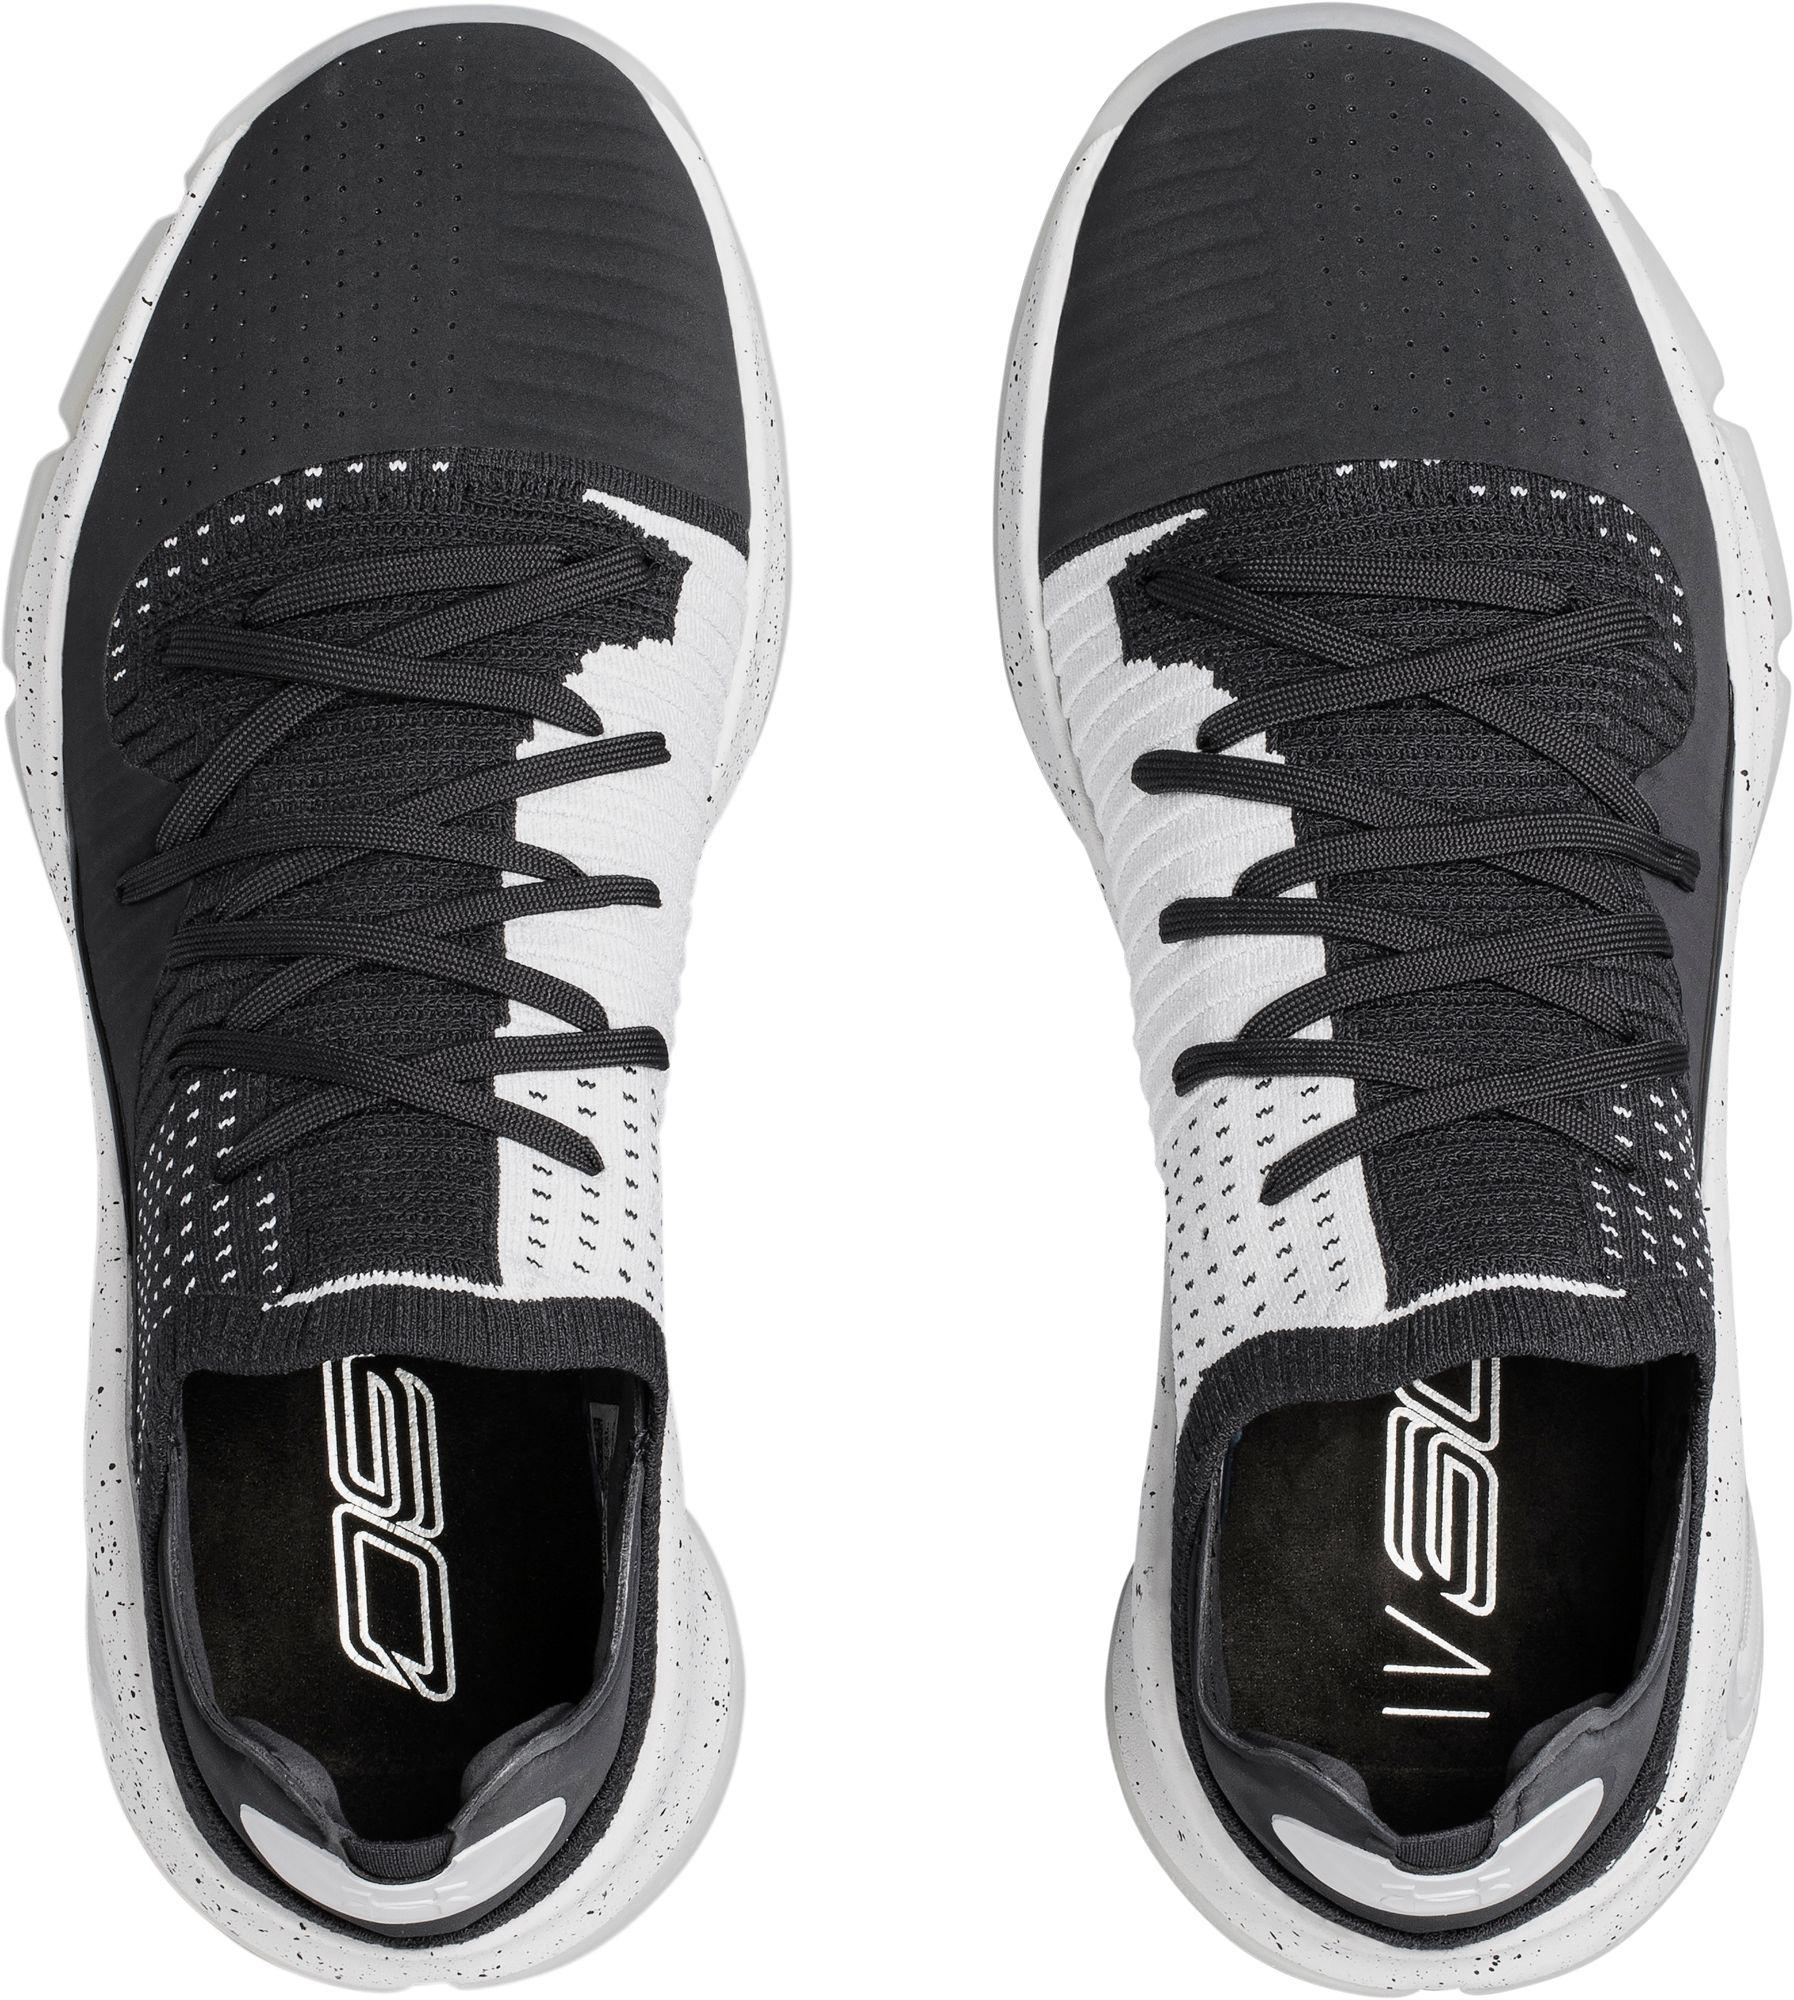 low priced 646e5 36bc8 Under Armour - Gray Curry 4 Low Basketball Shoes for Men - Lyst